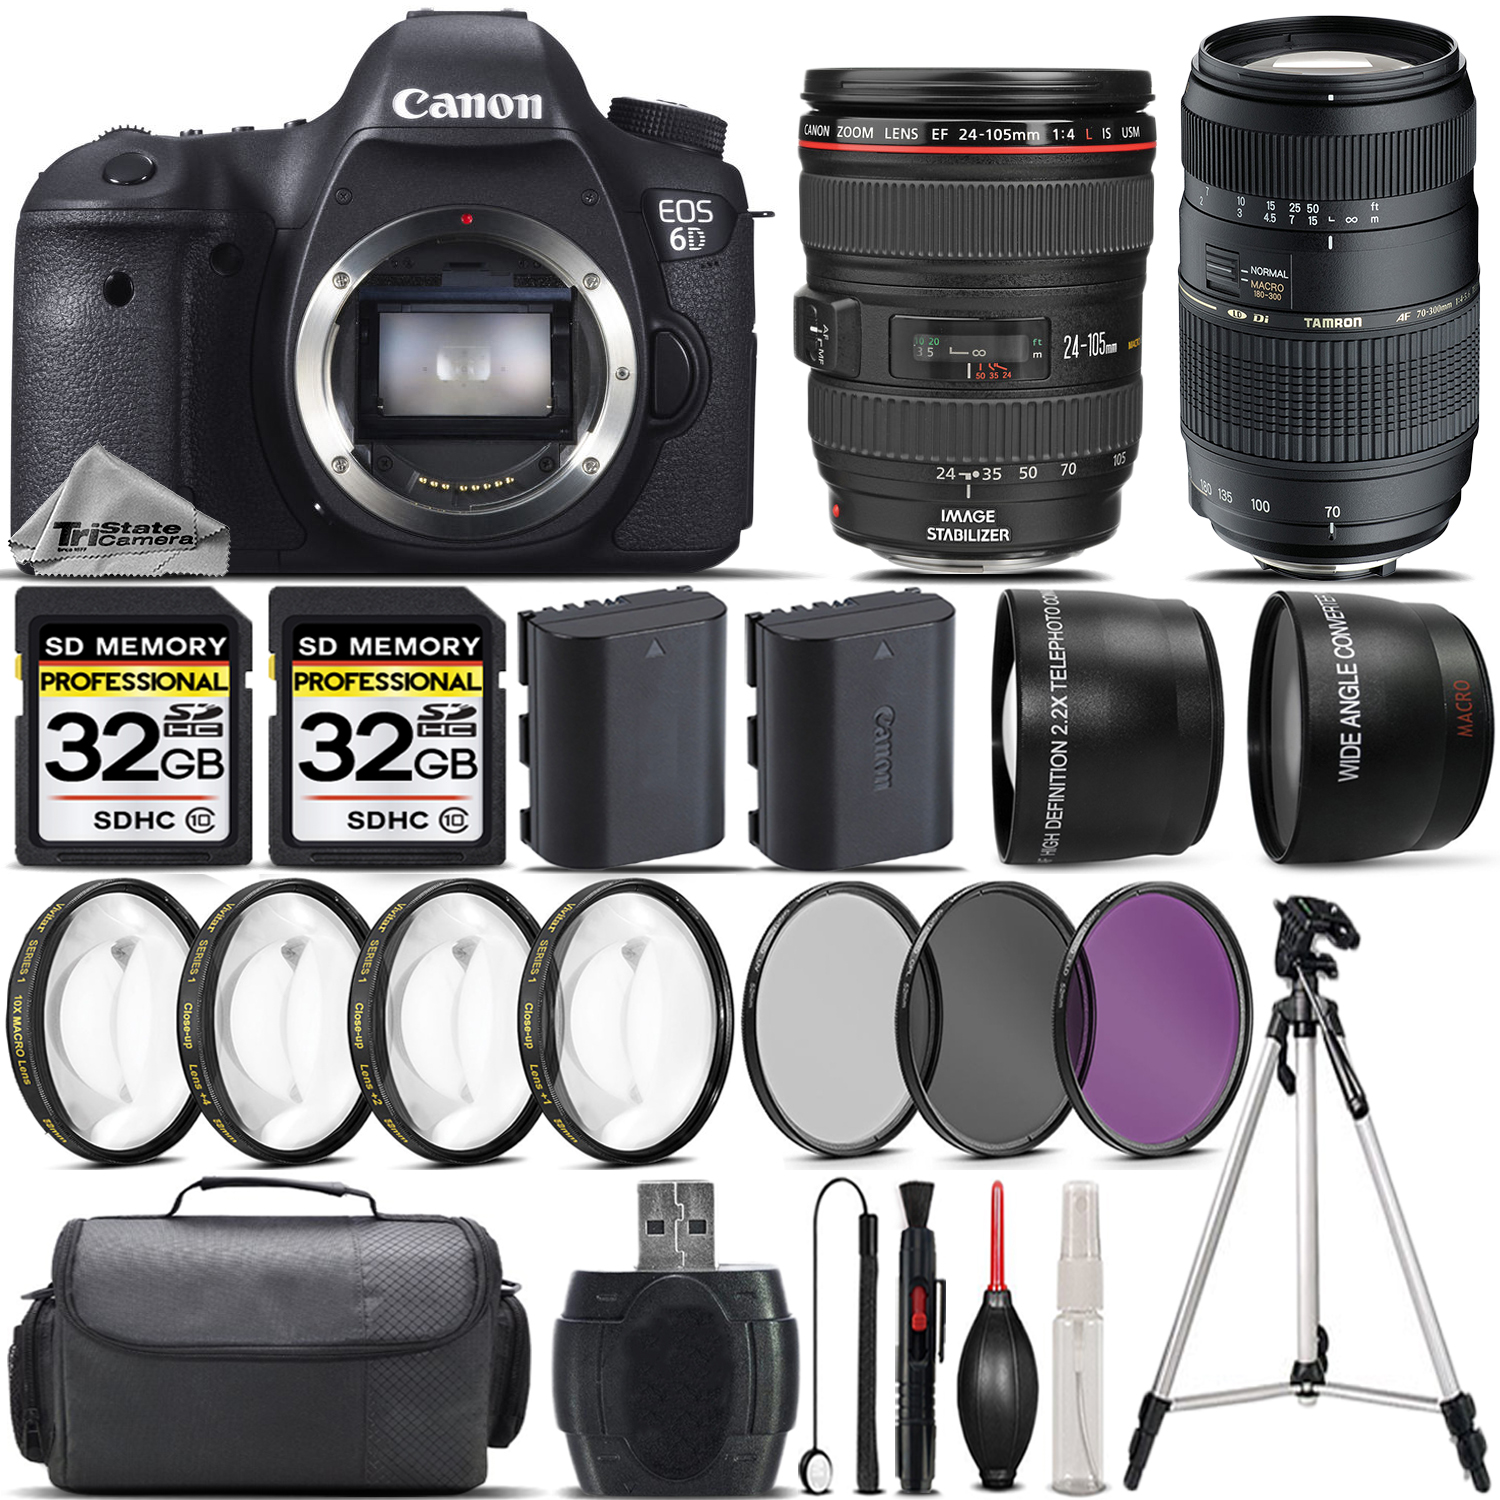 EOS 6D DSLR Camera + Canon 24-105 L Lens + 70-300mm Lens + 4PC Macro Kit *FREE SHIPPING*